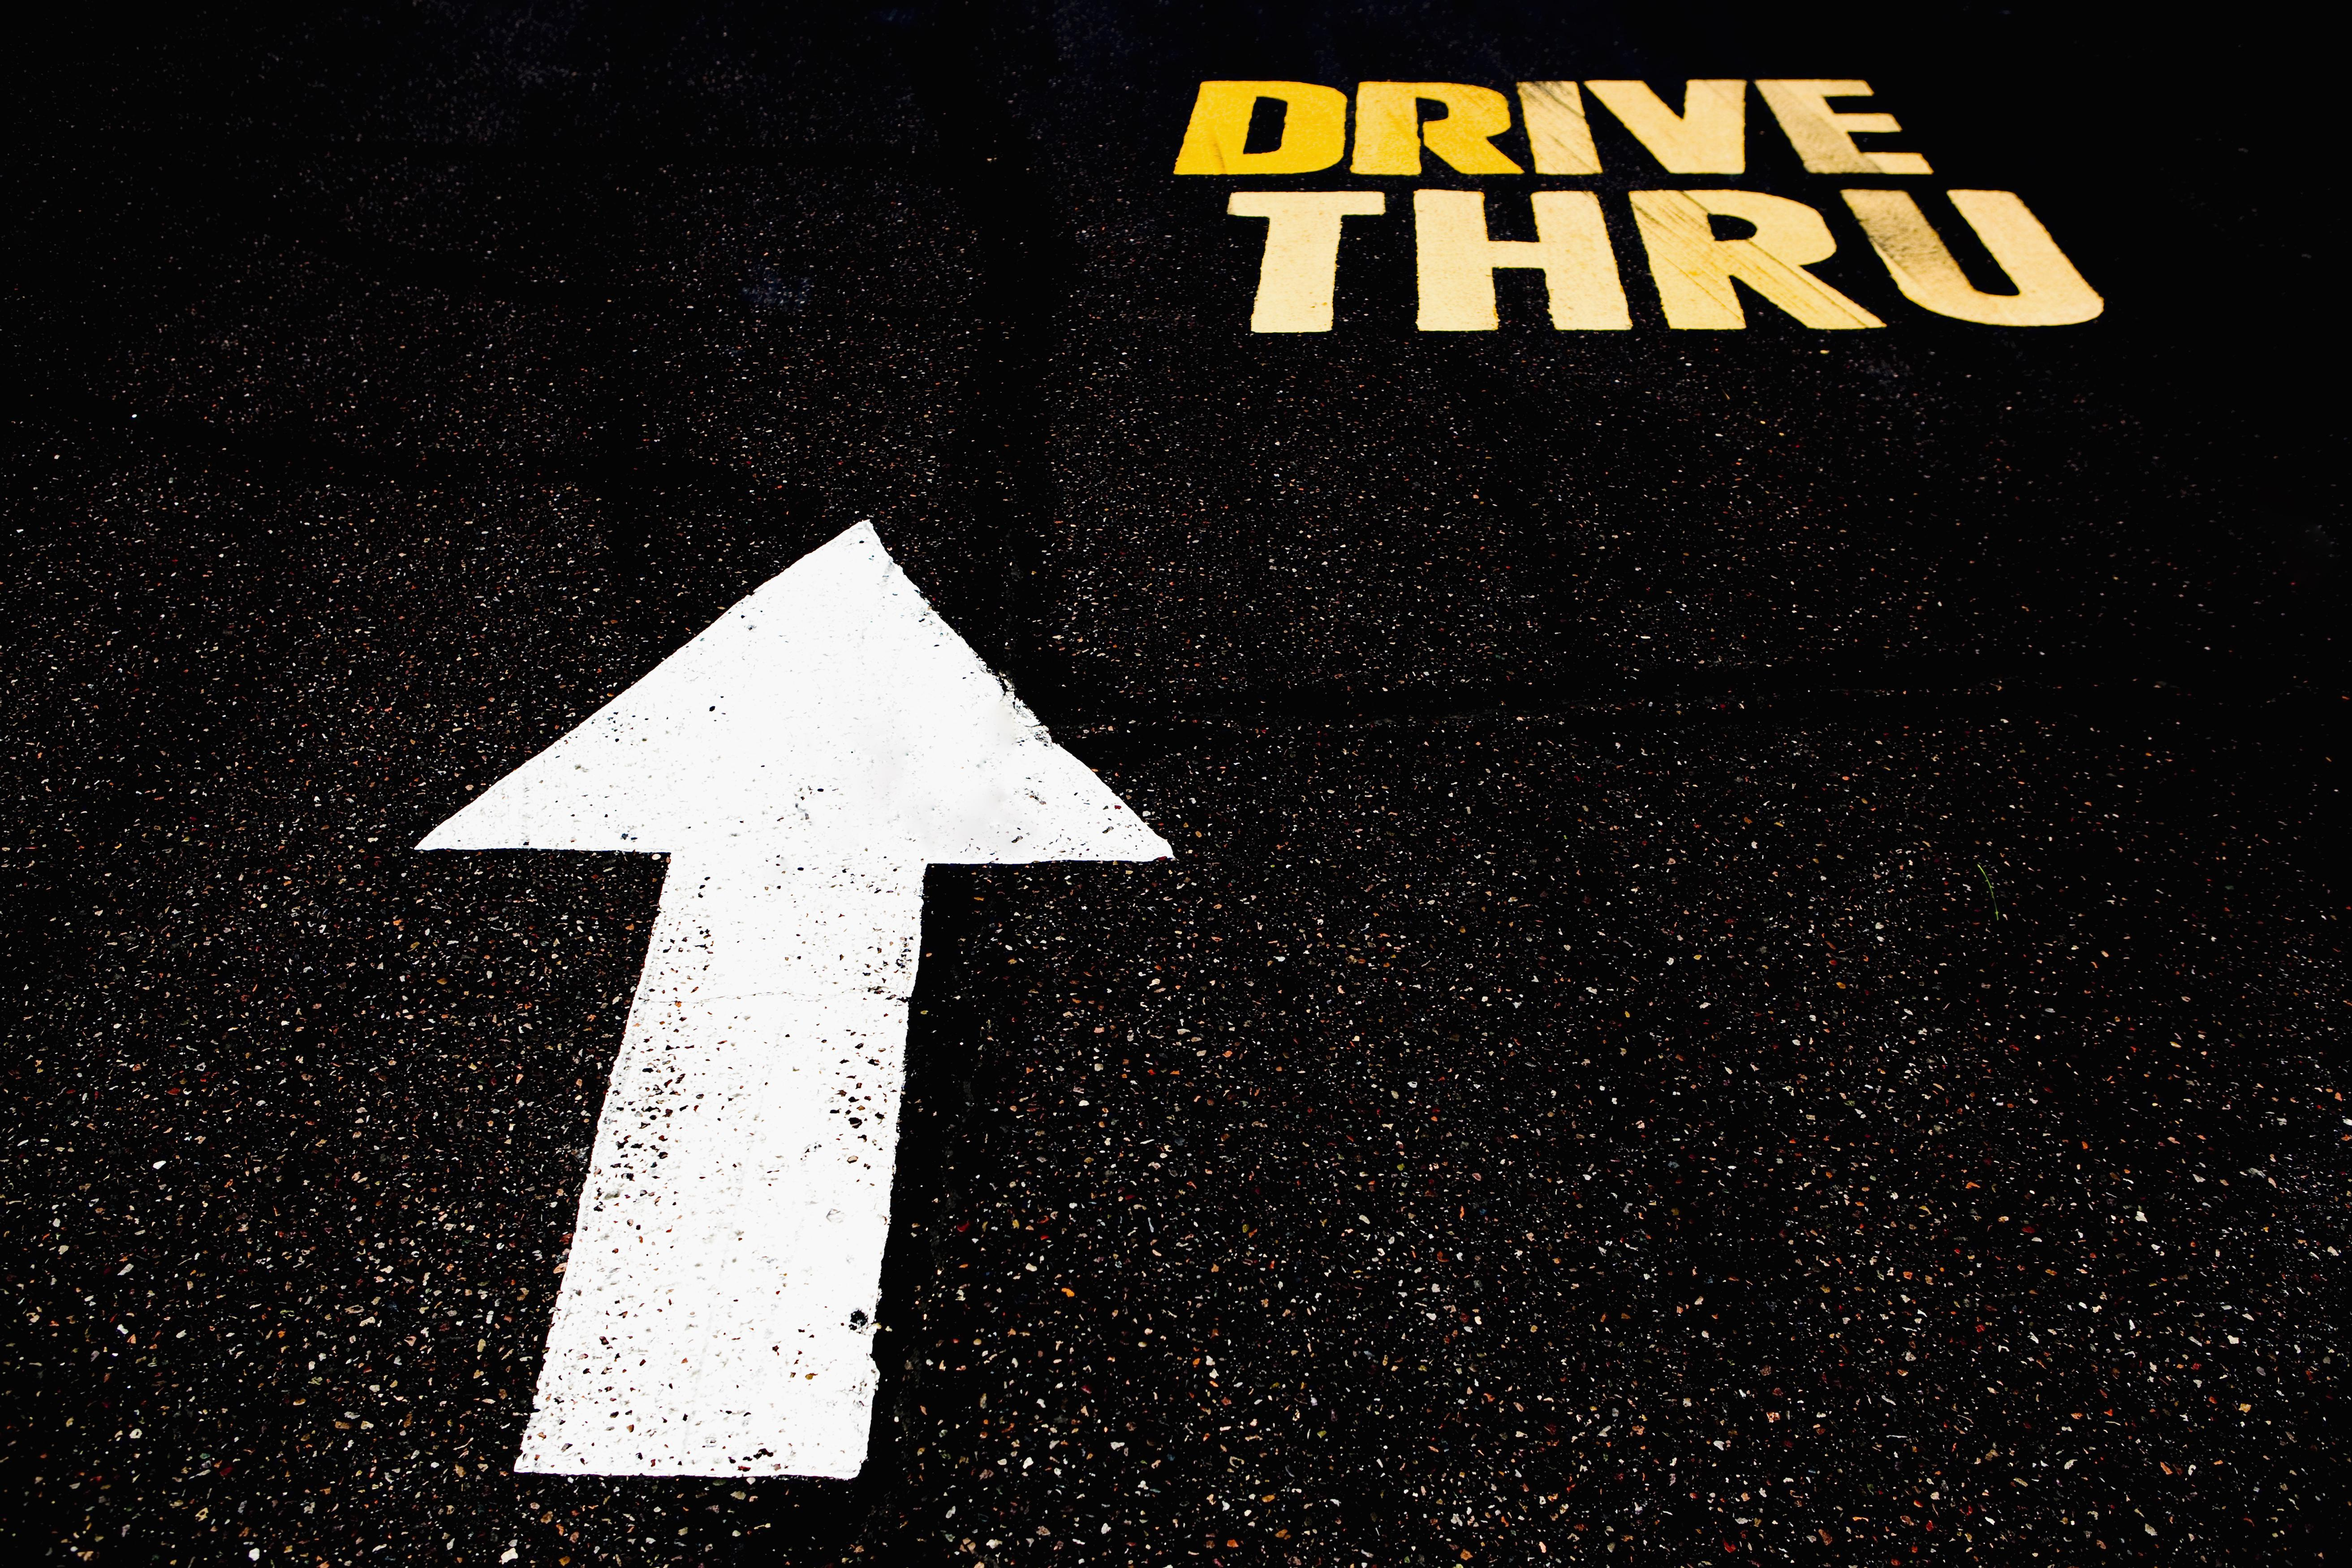 Drive Thru sign on the road